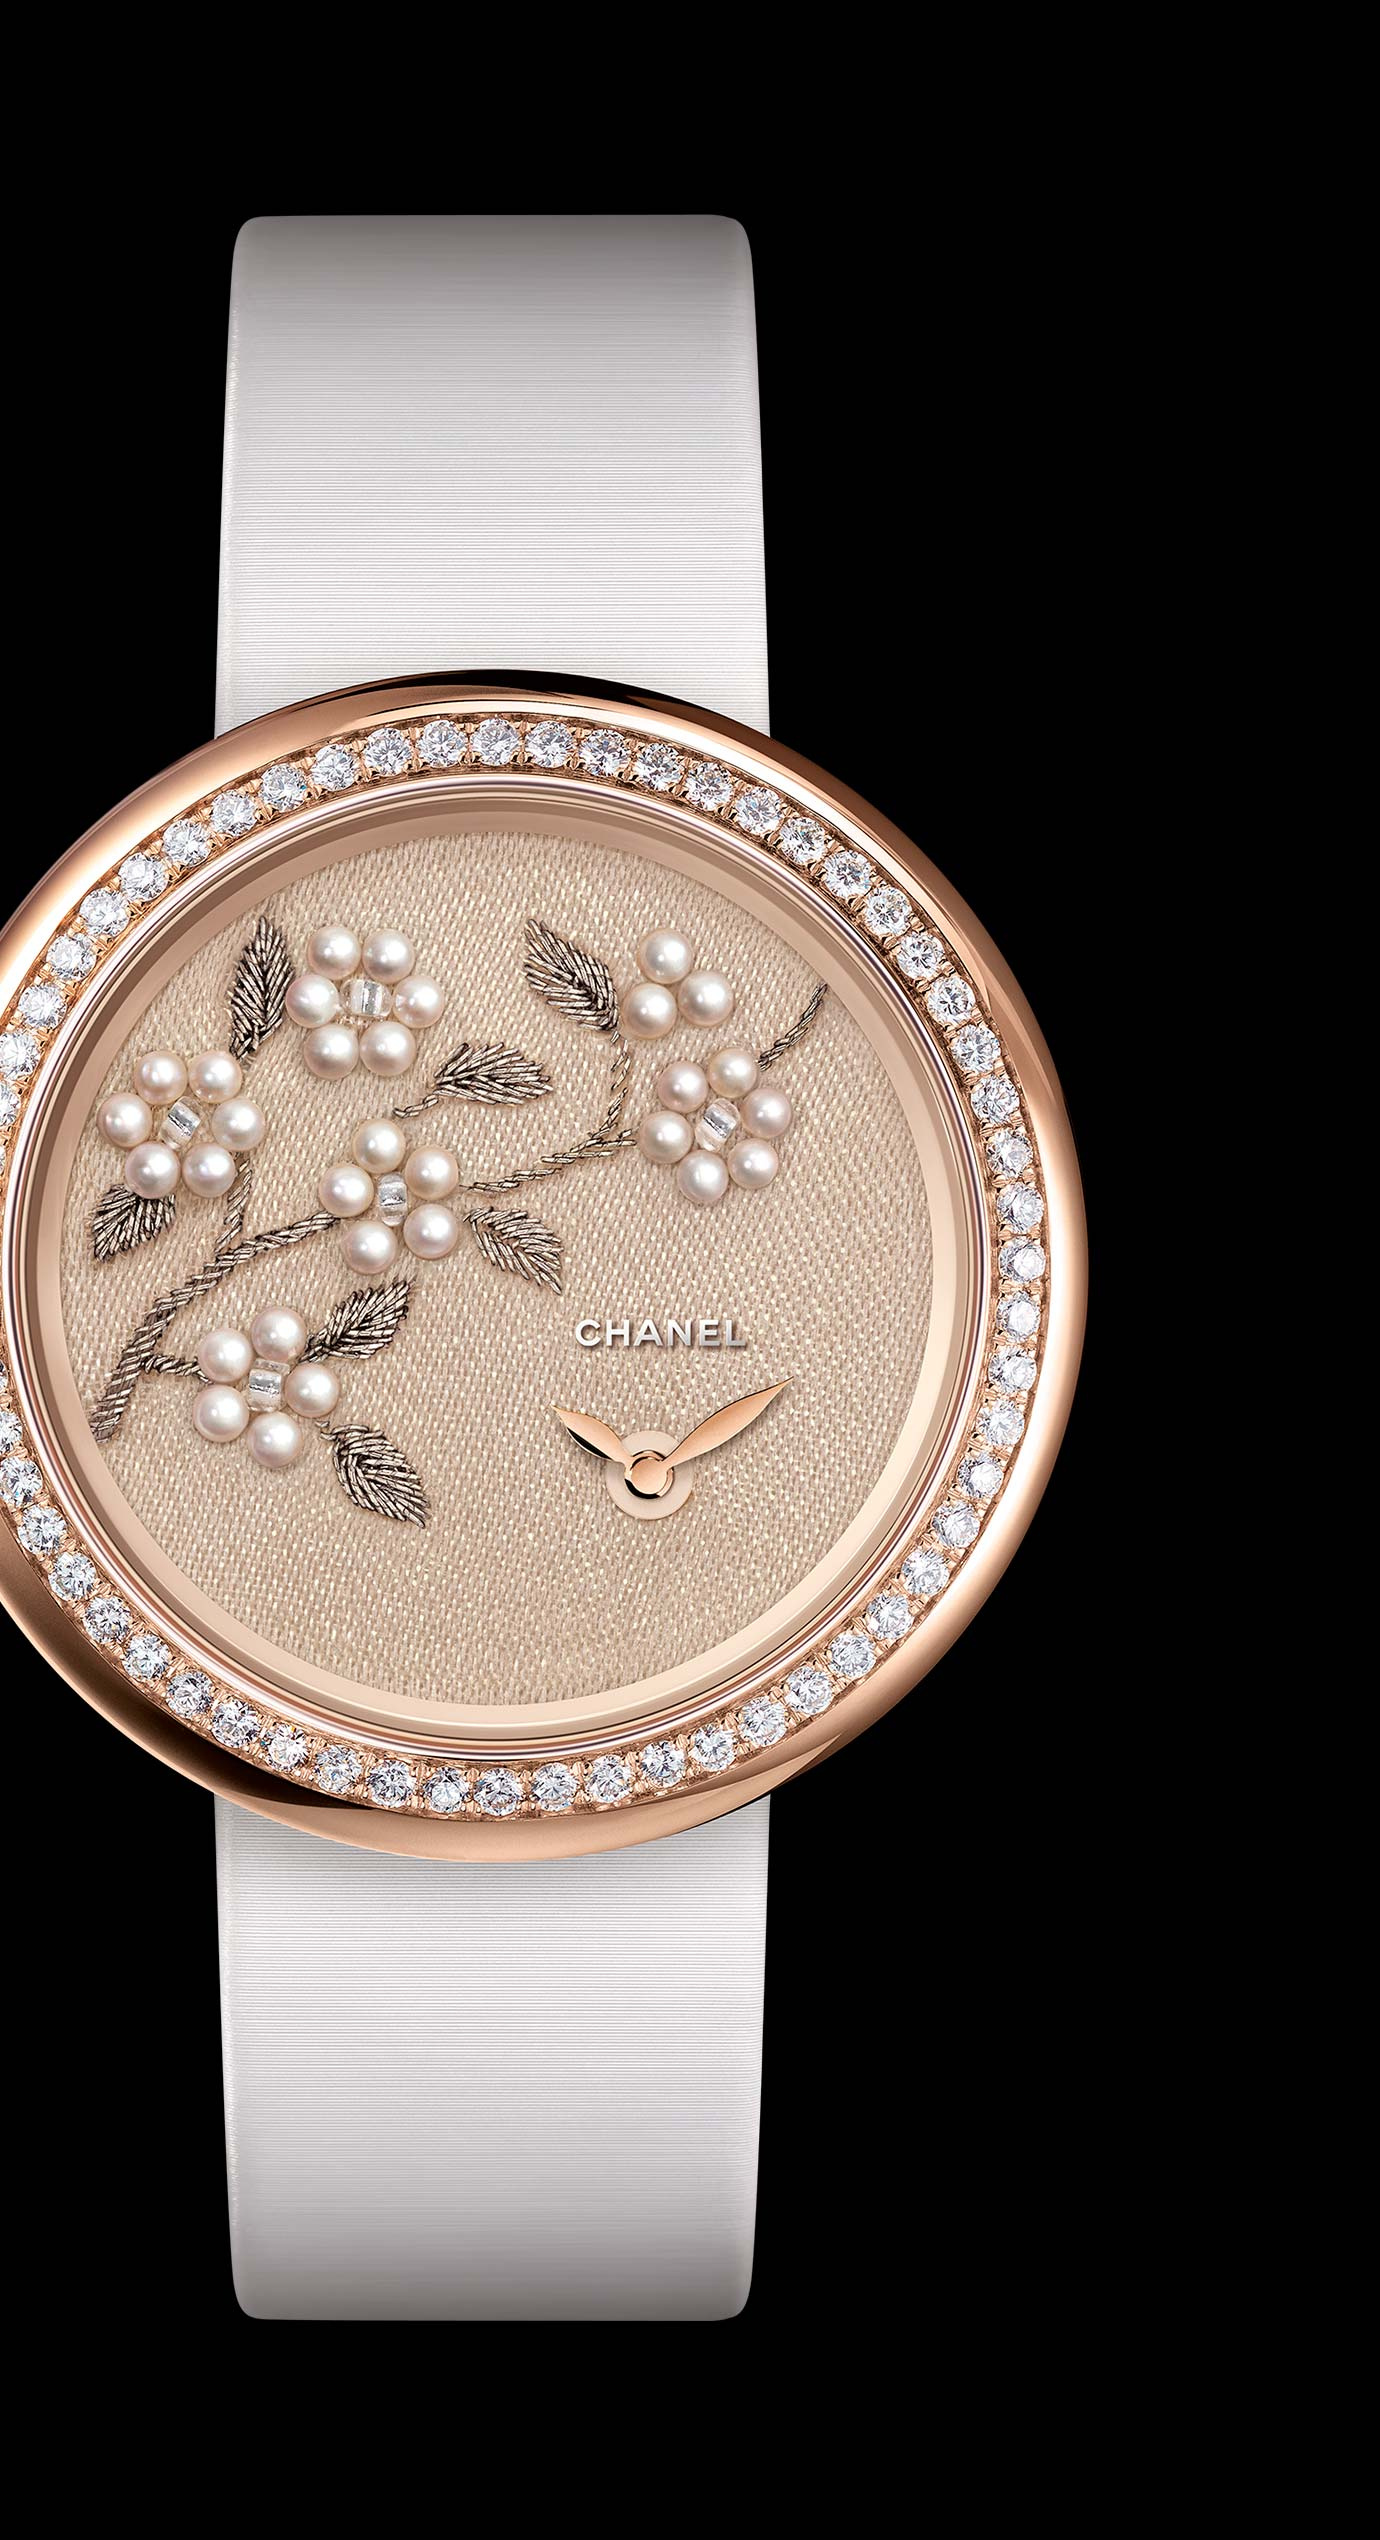 Mademoiselle Privé watch with gold thread camellias, fine pearls and glass beads - Lesage embroidery. - Enlarged view